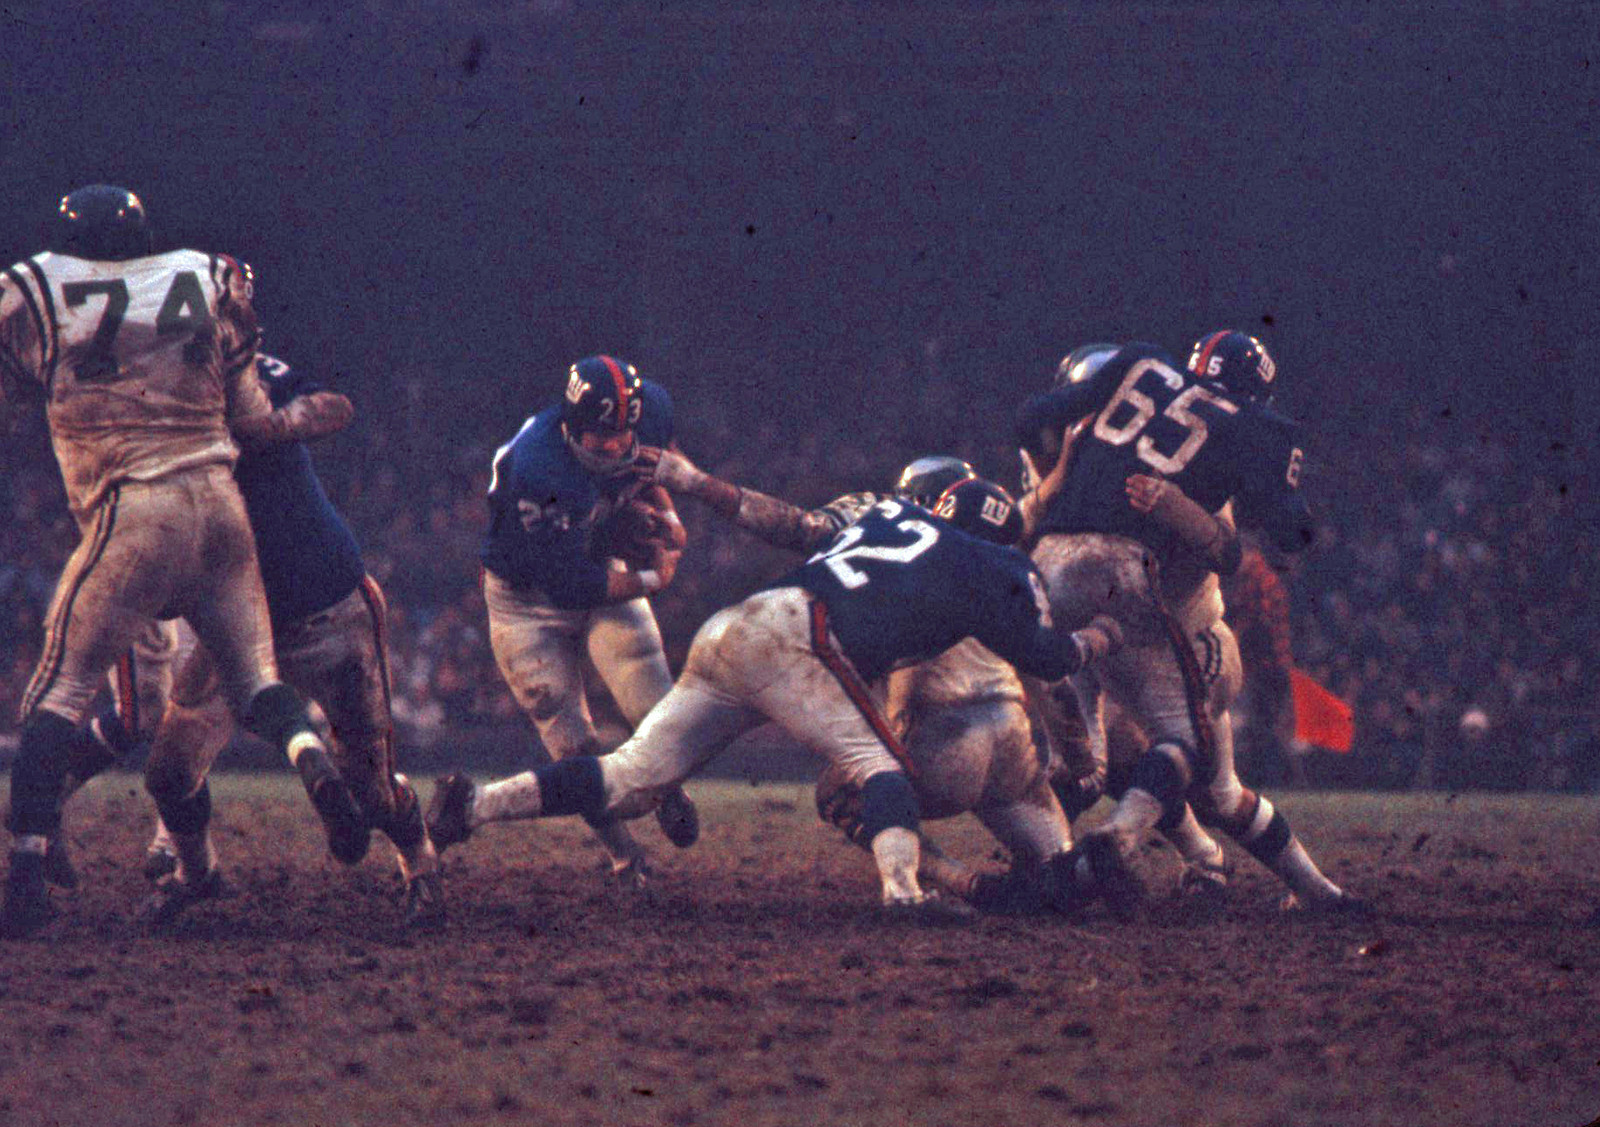 Ernie Koy (23), Darrell Dess (62), Pete Case (65), New York Giants (November 17, 1968)